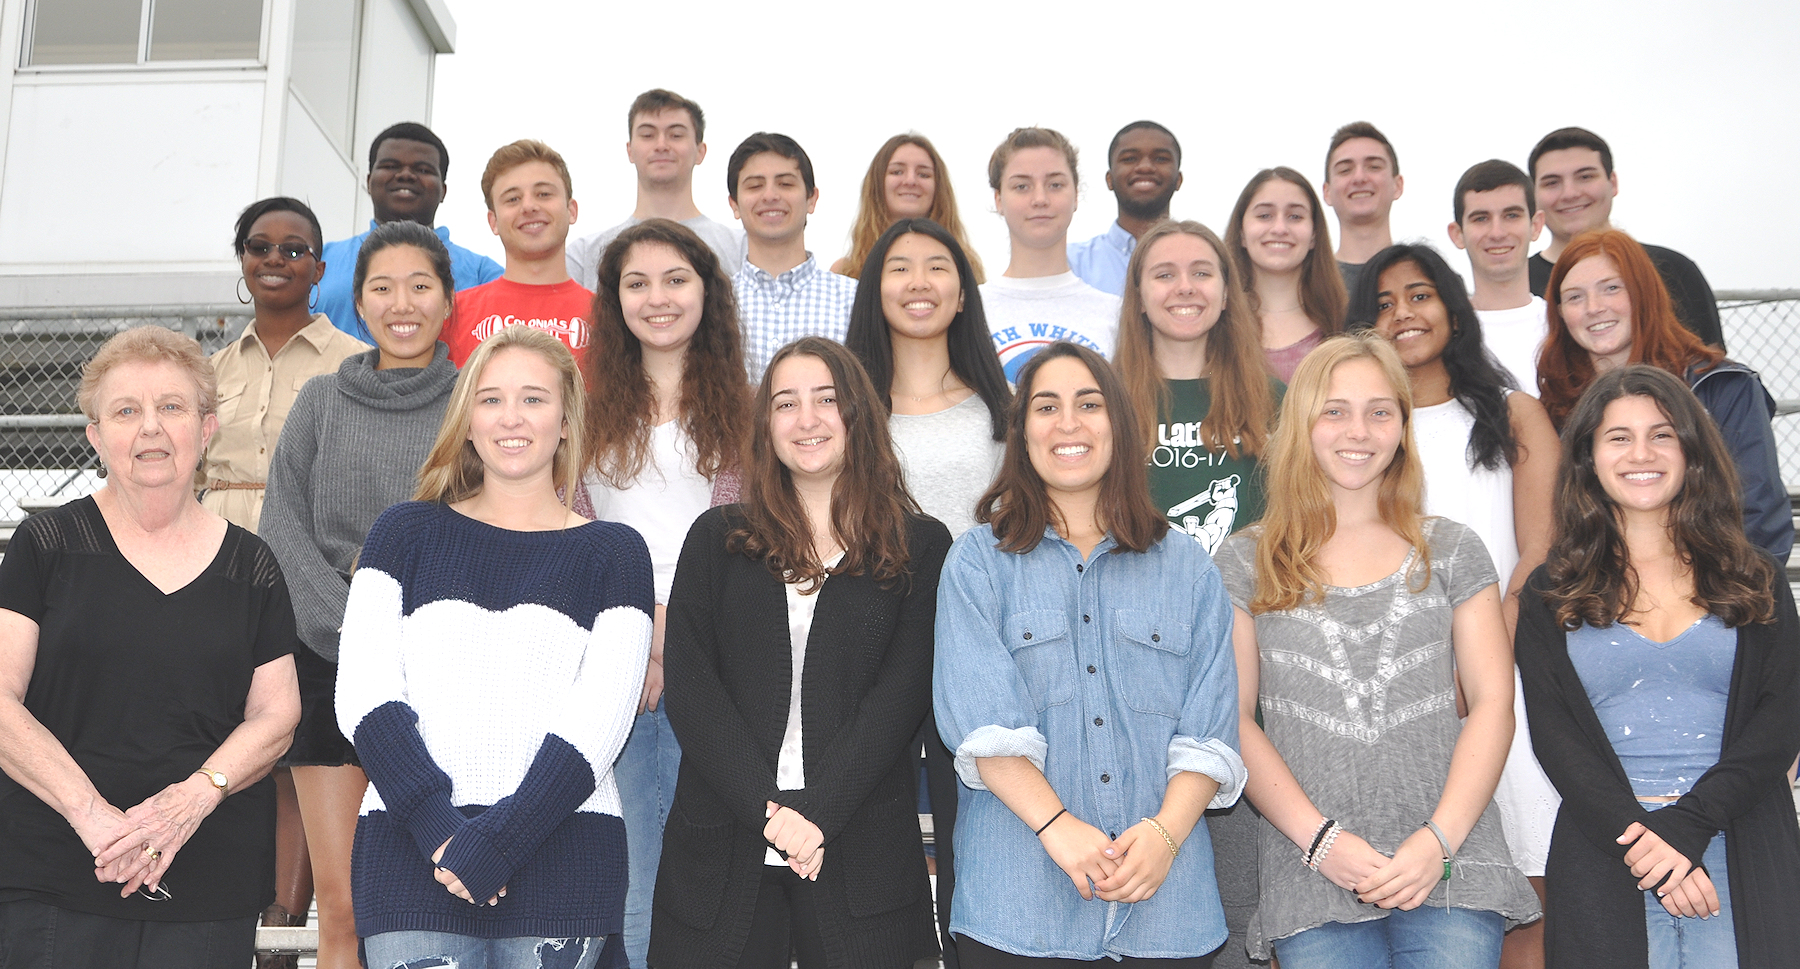 Plymouth Whitemarsh High School Scholarship Award winners standing in rows